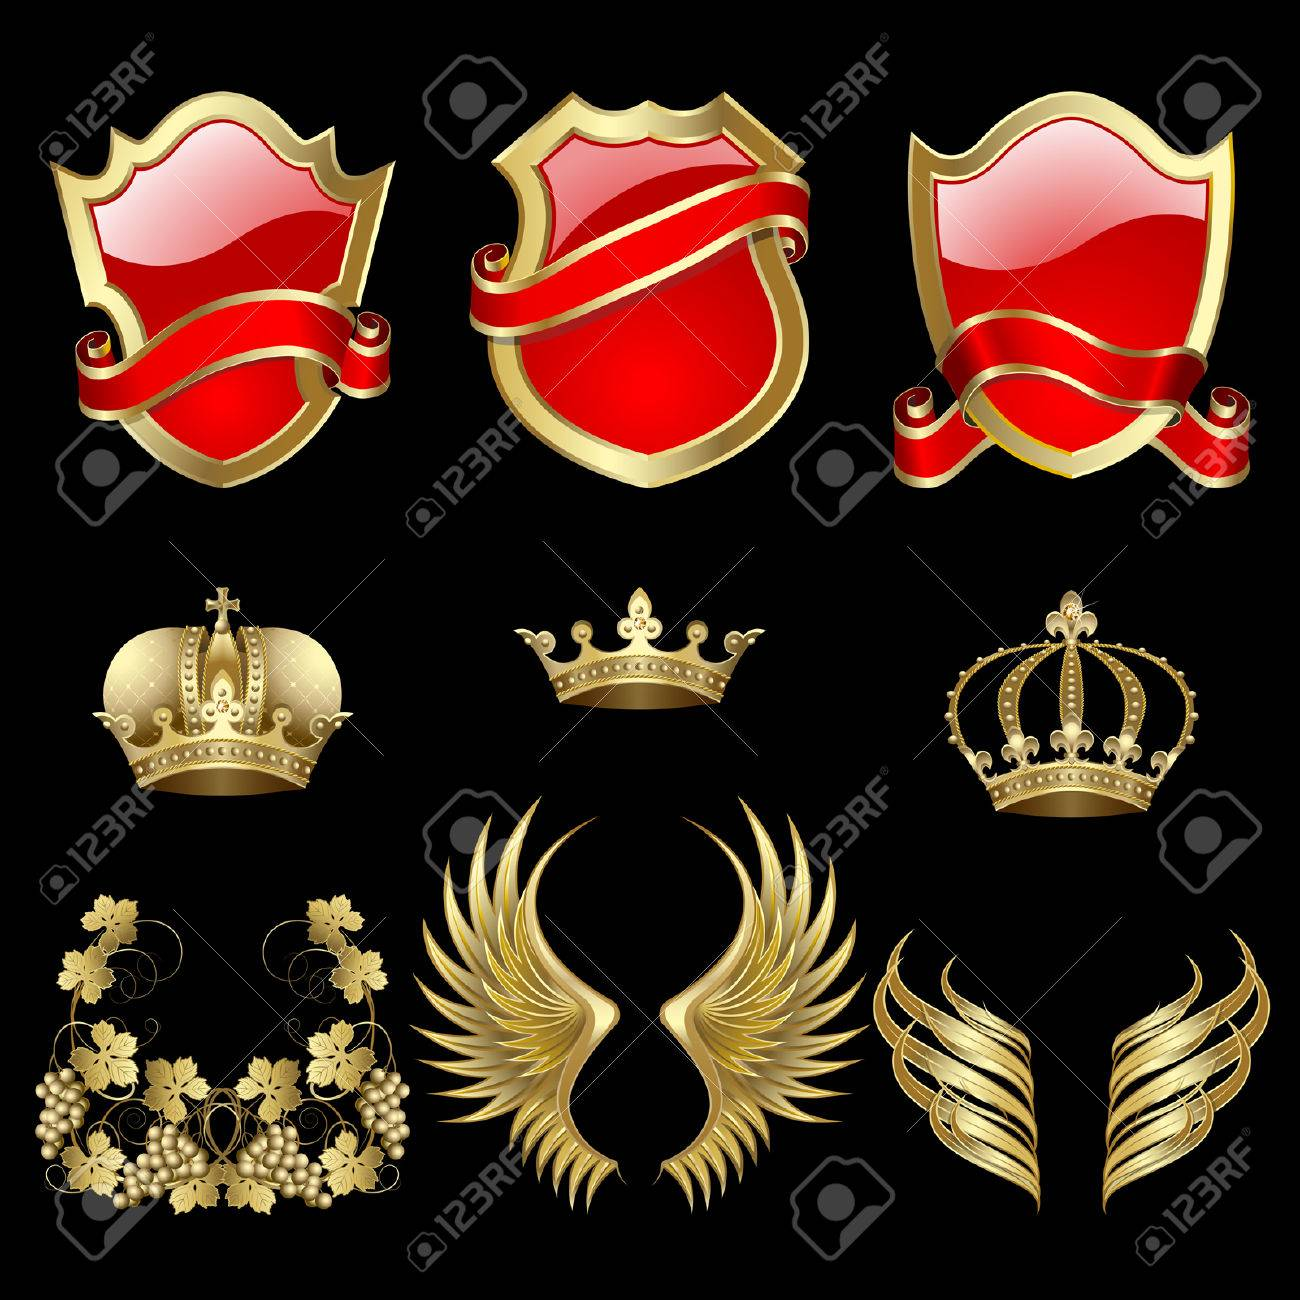 Set of heraldic gold and red design elements Stock Vector - 7675536